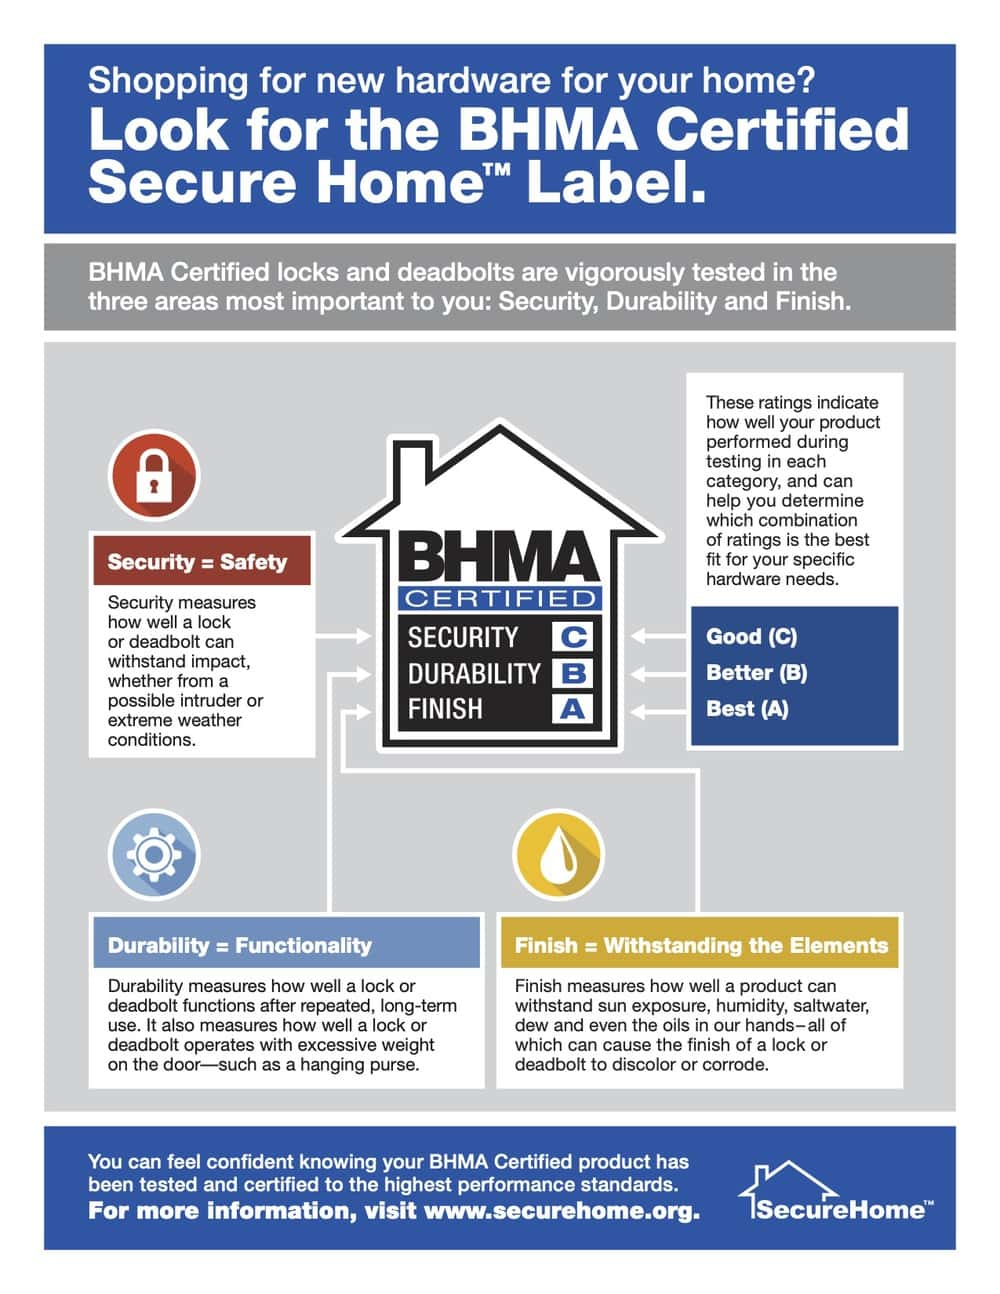 Look for the label BHMA Infographic